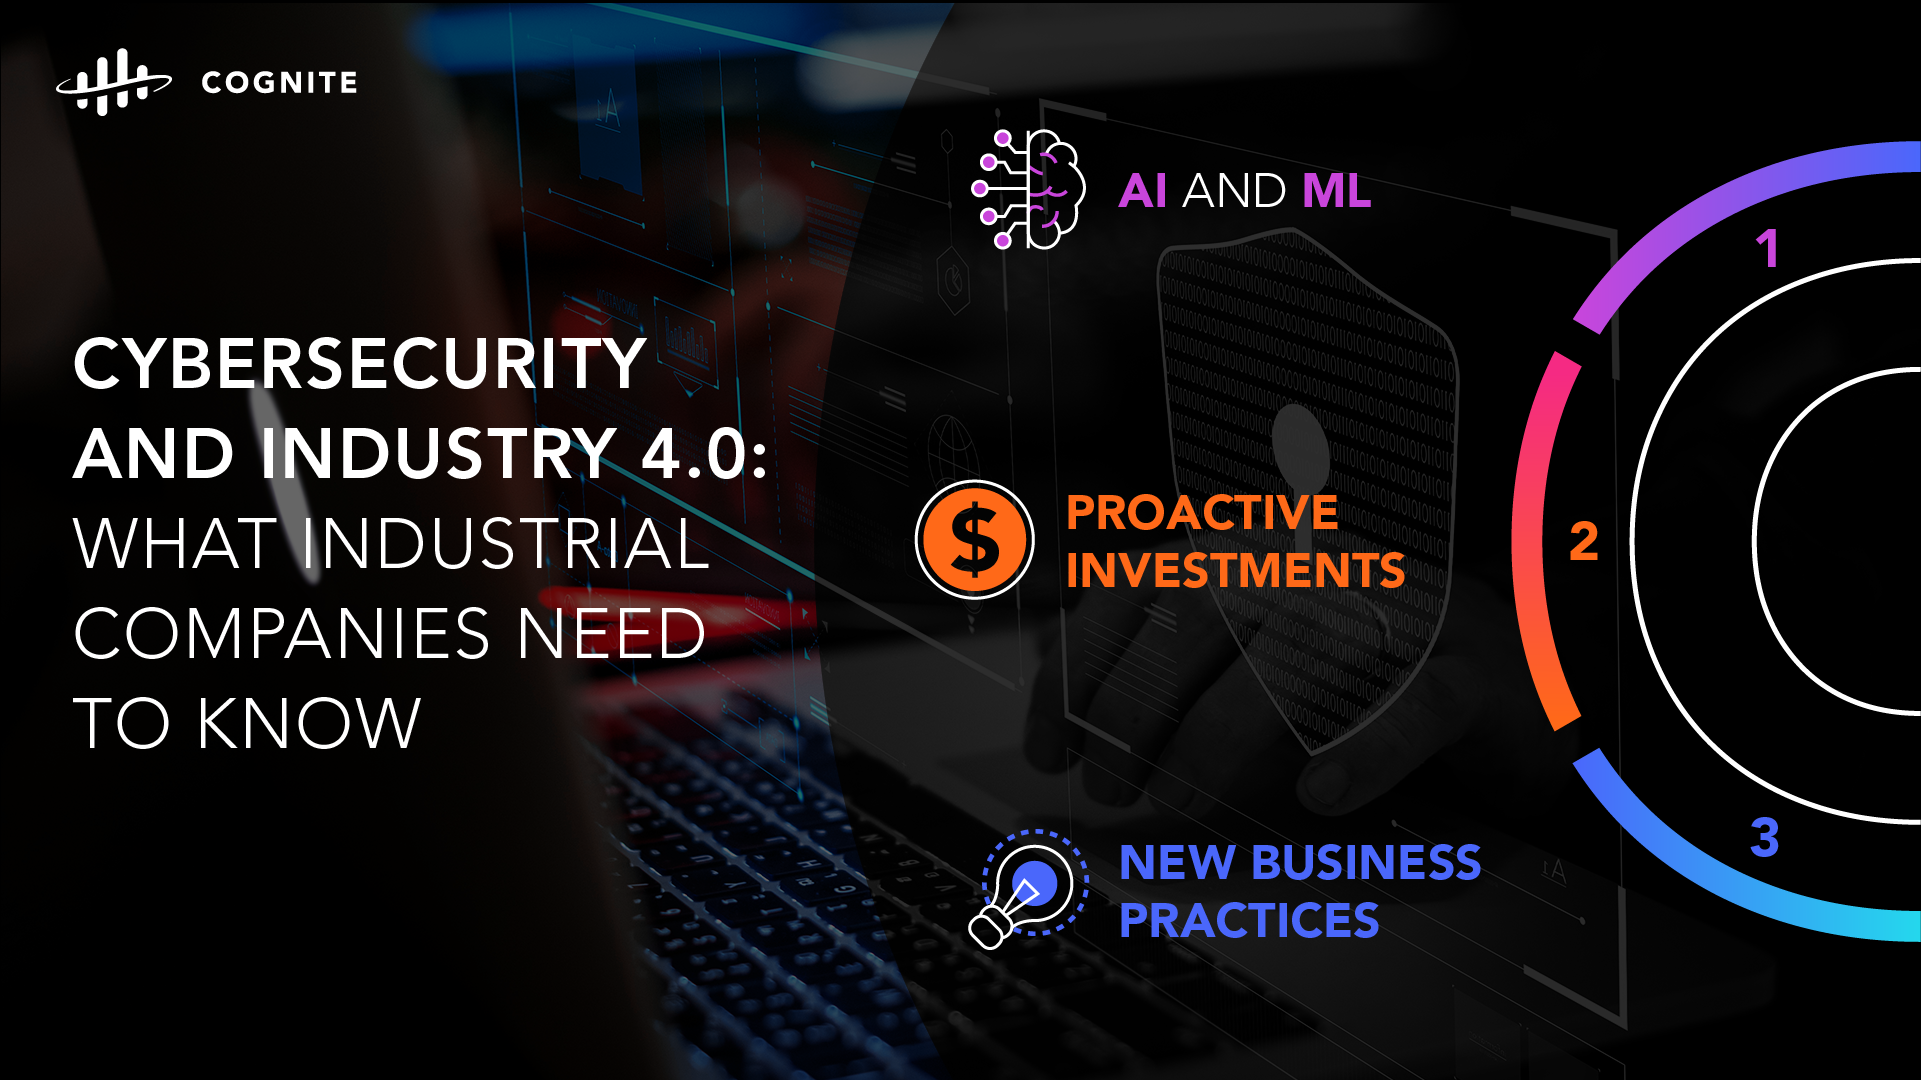 Cybersecurity and Industry 4.0: What industrial companies need to know